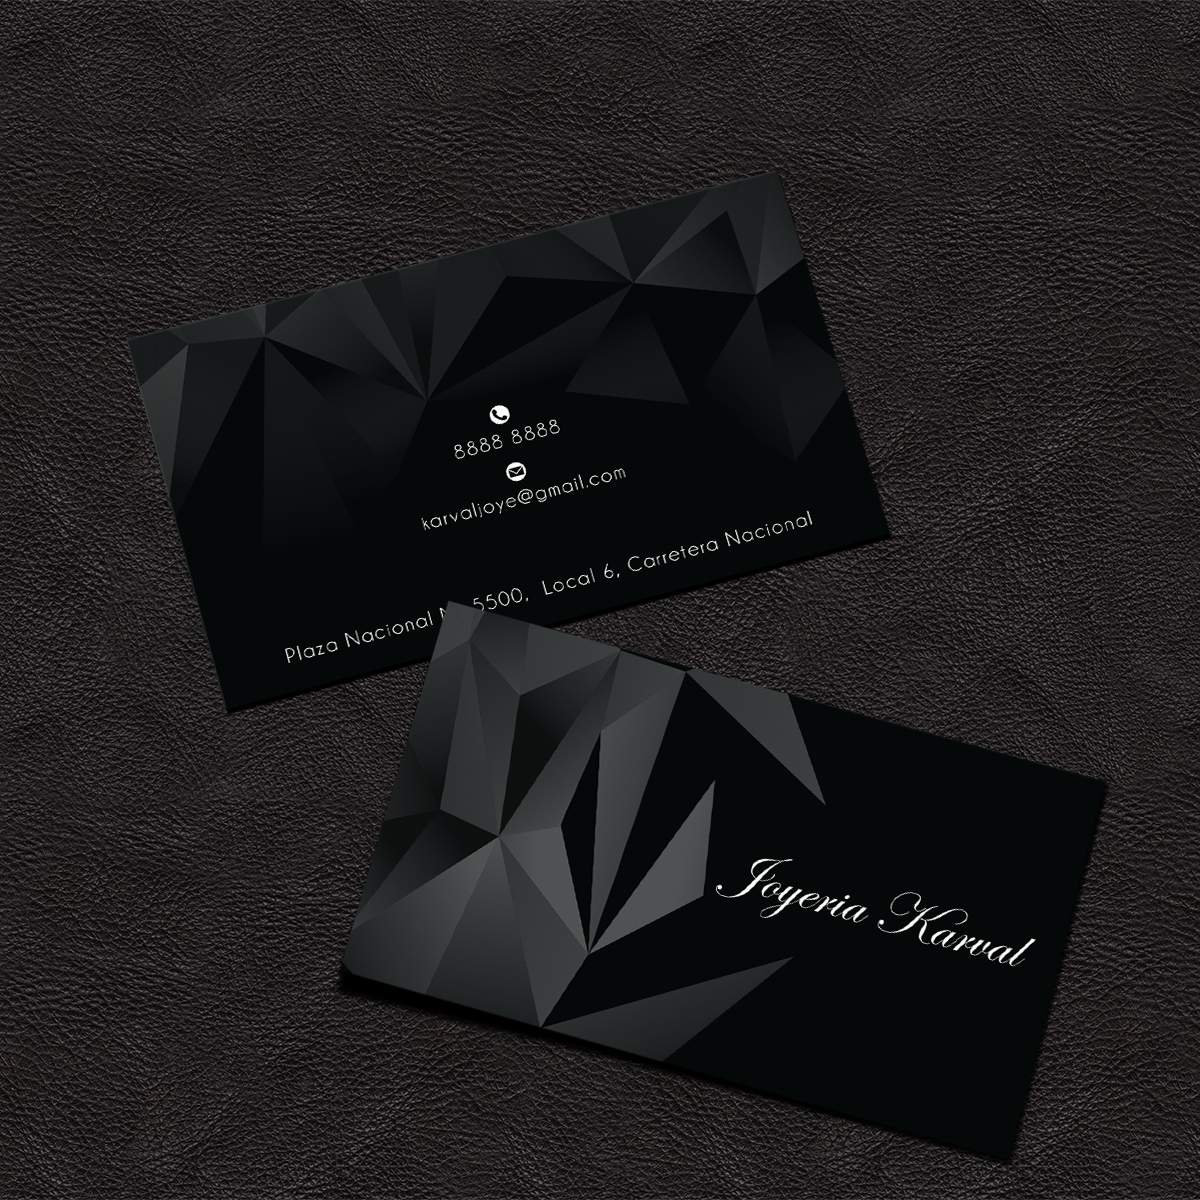 Elegant Jewelry Business Cards Images - Card Design And Card Template